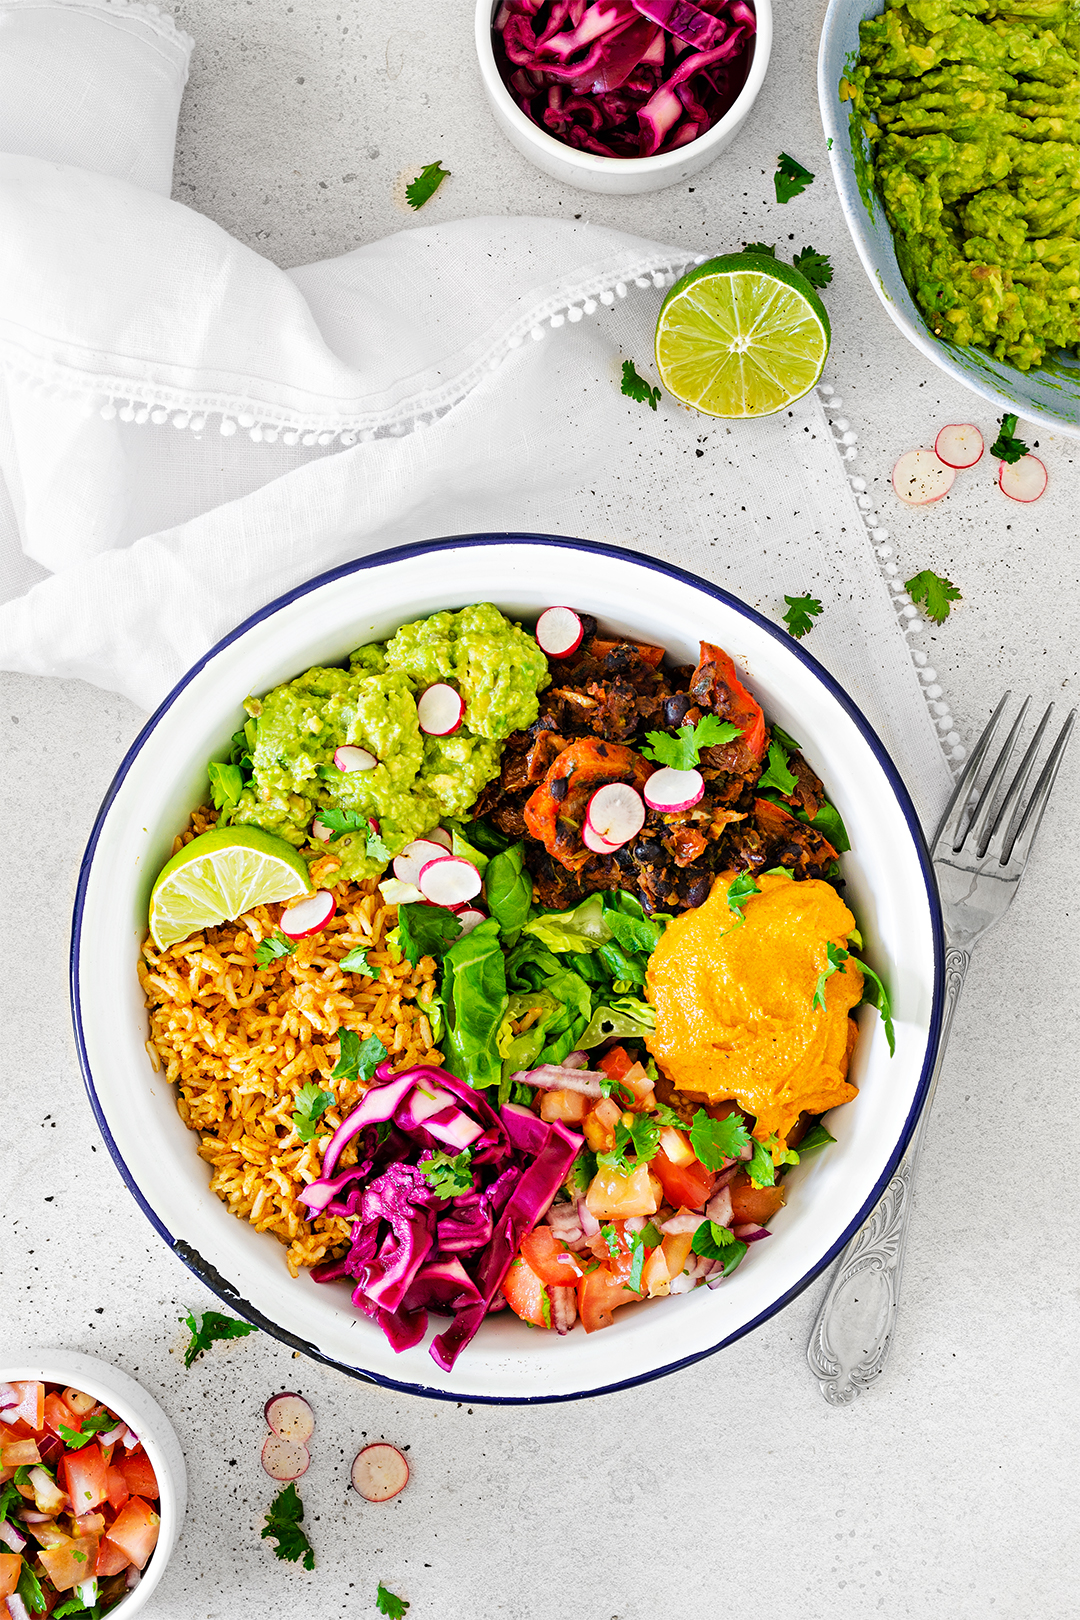 Vegan Mexican Burrito Bowl